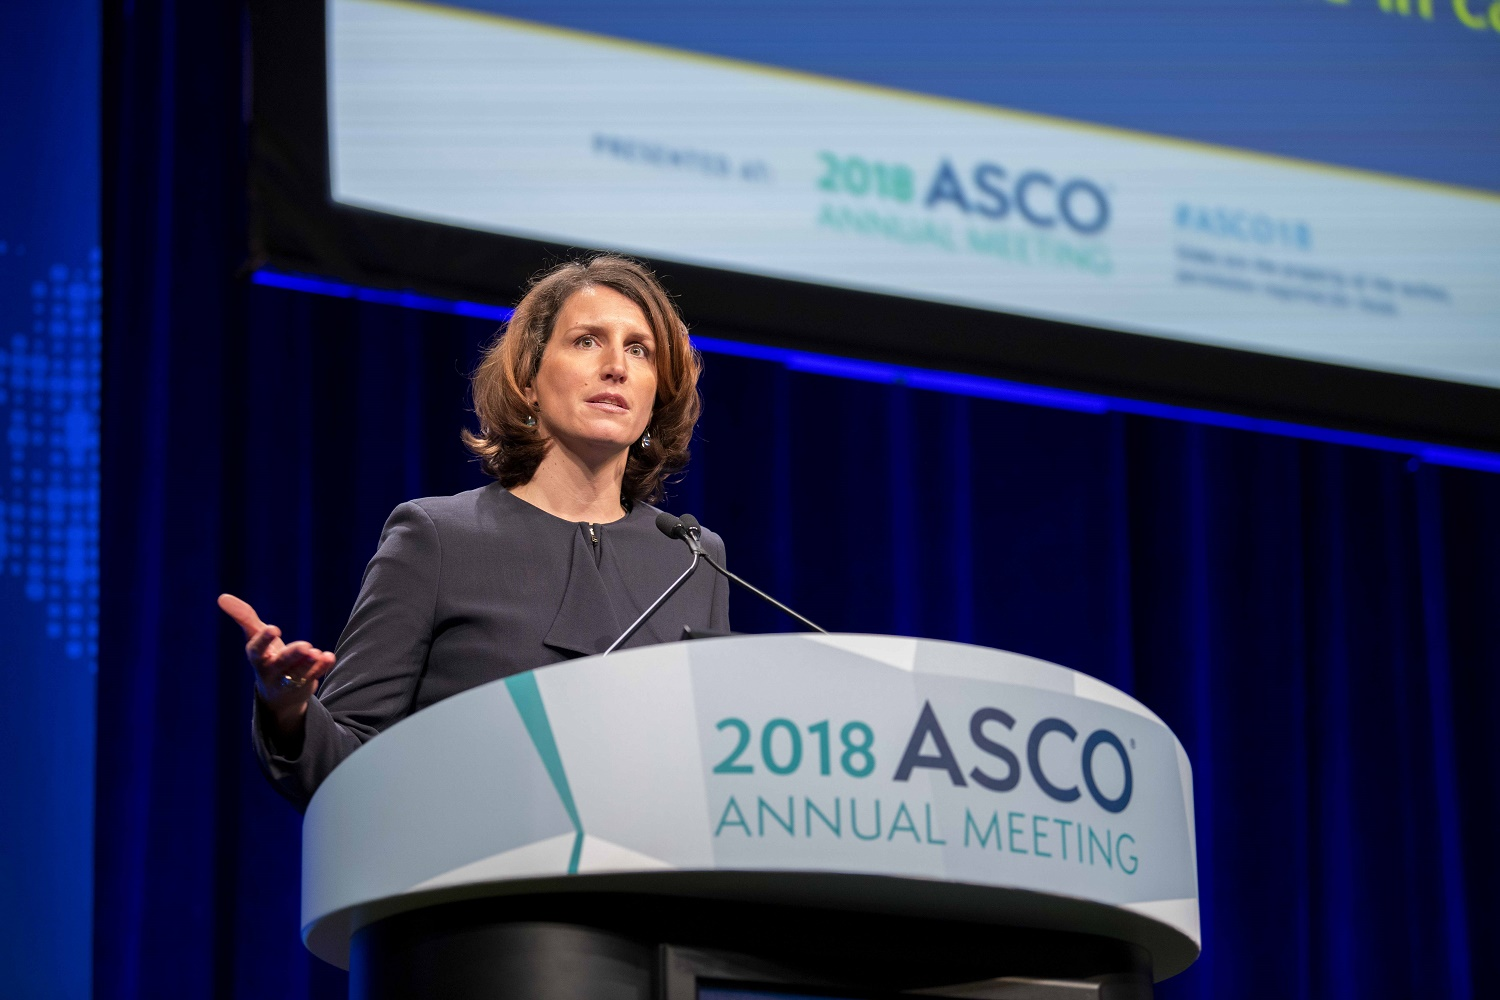 Laurence Albiges speaking at ASCO18